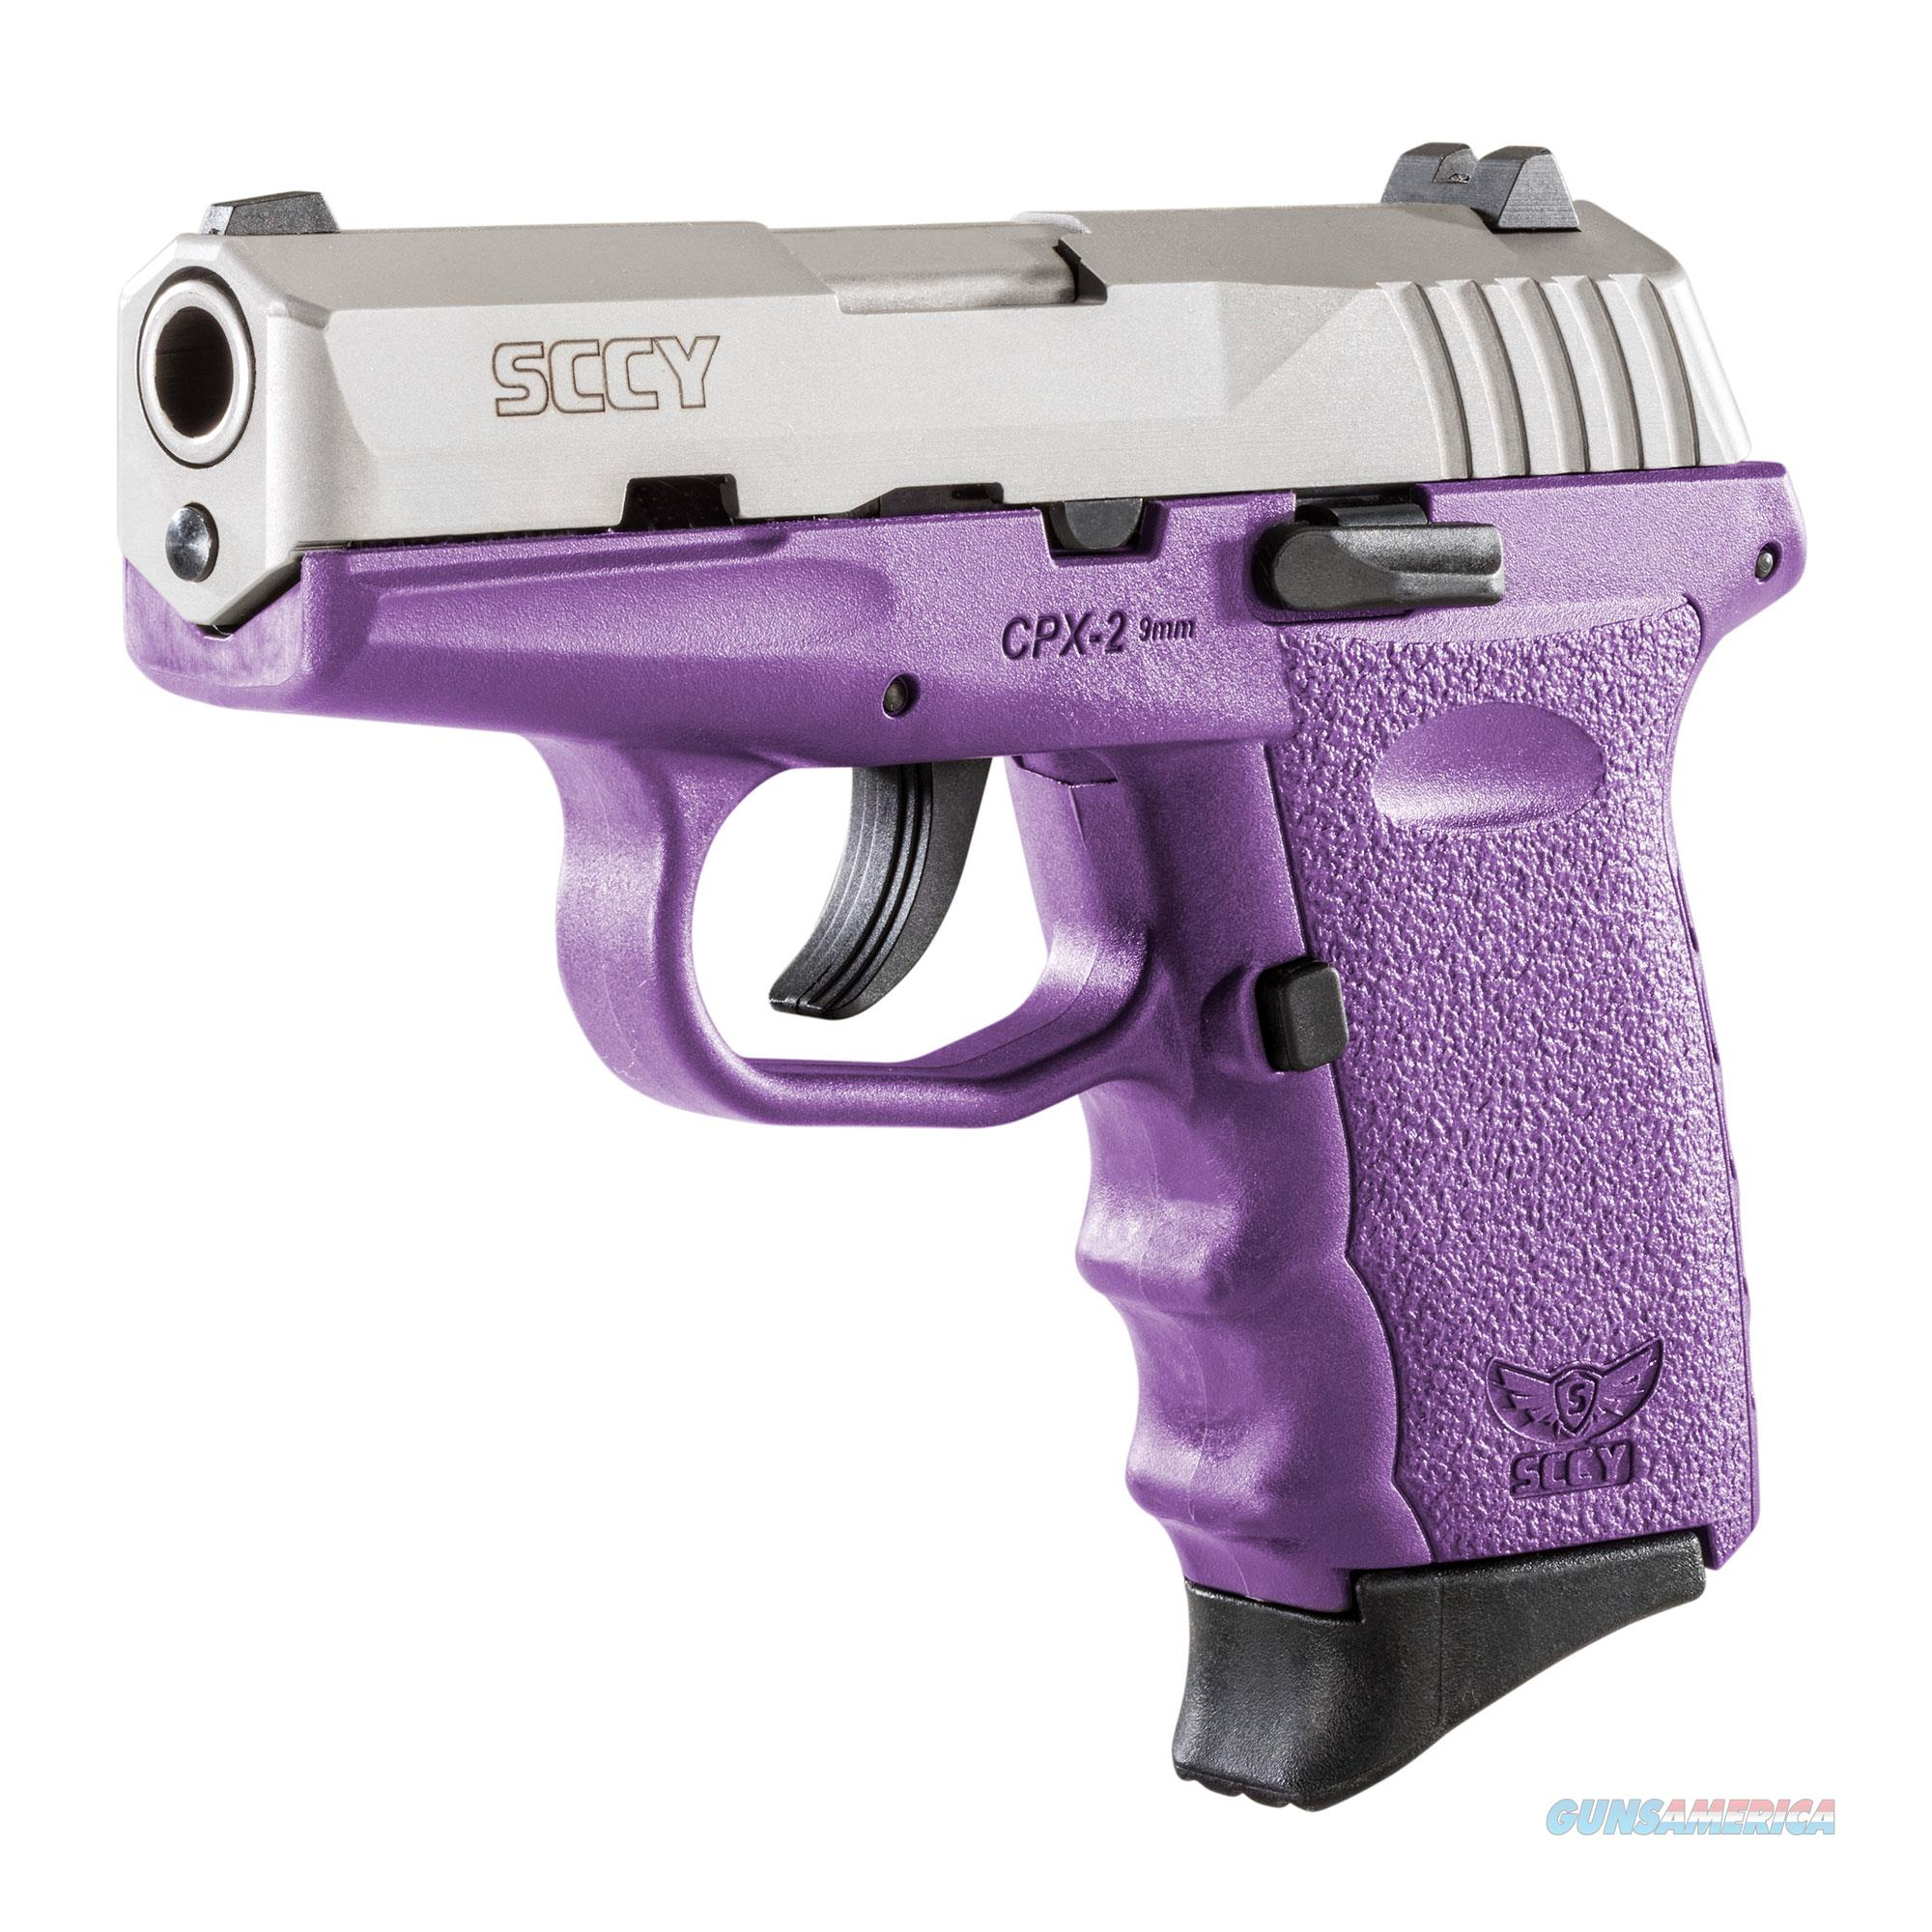 SCCY CPX-2 9mm Auto Pistol – Stainless/Purple - New in Box  Guns > Pistols > SCCY Pistols > CPX2